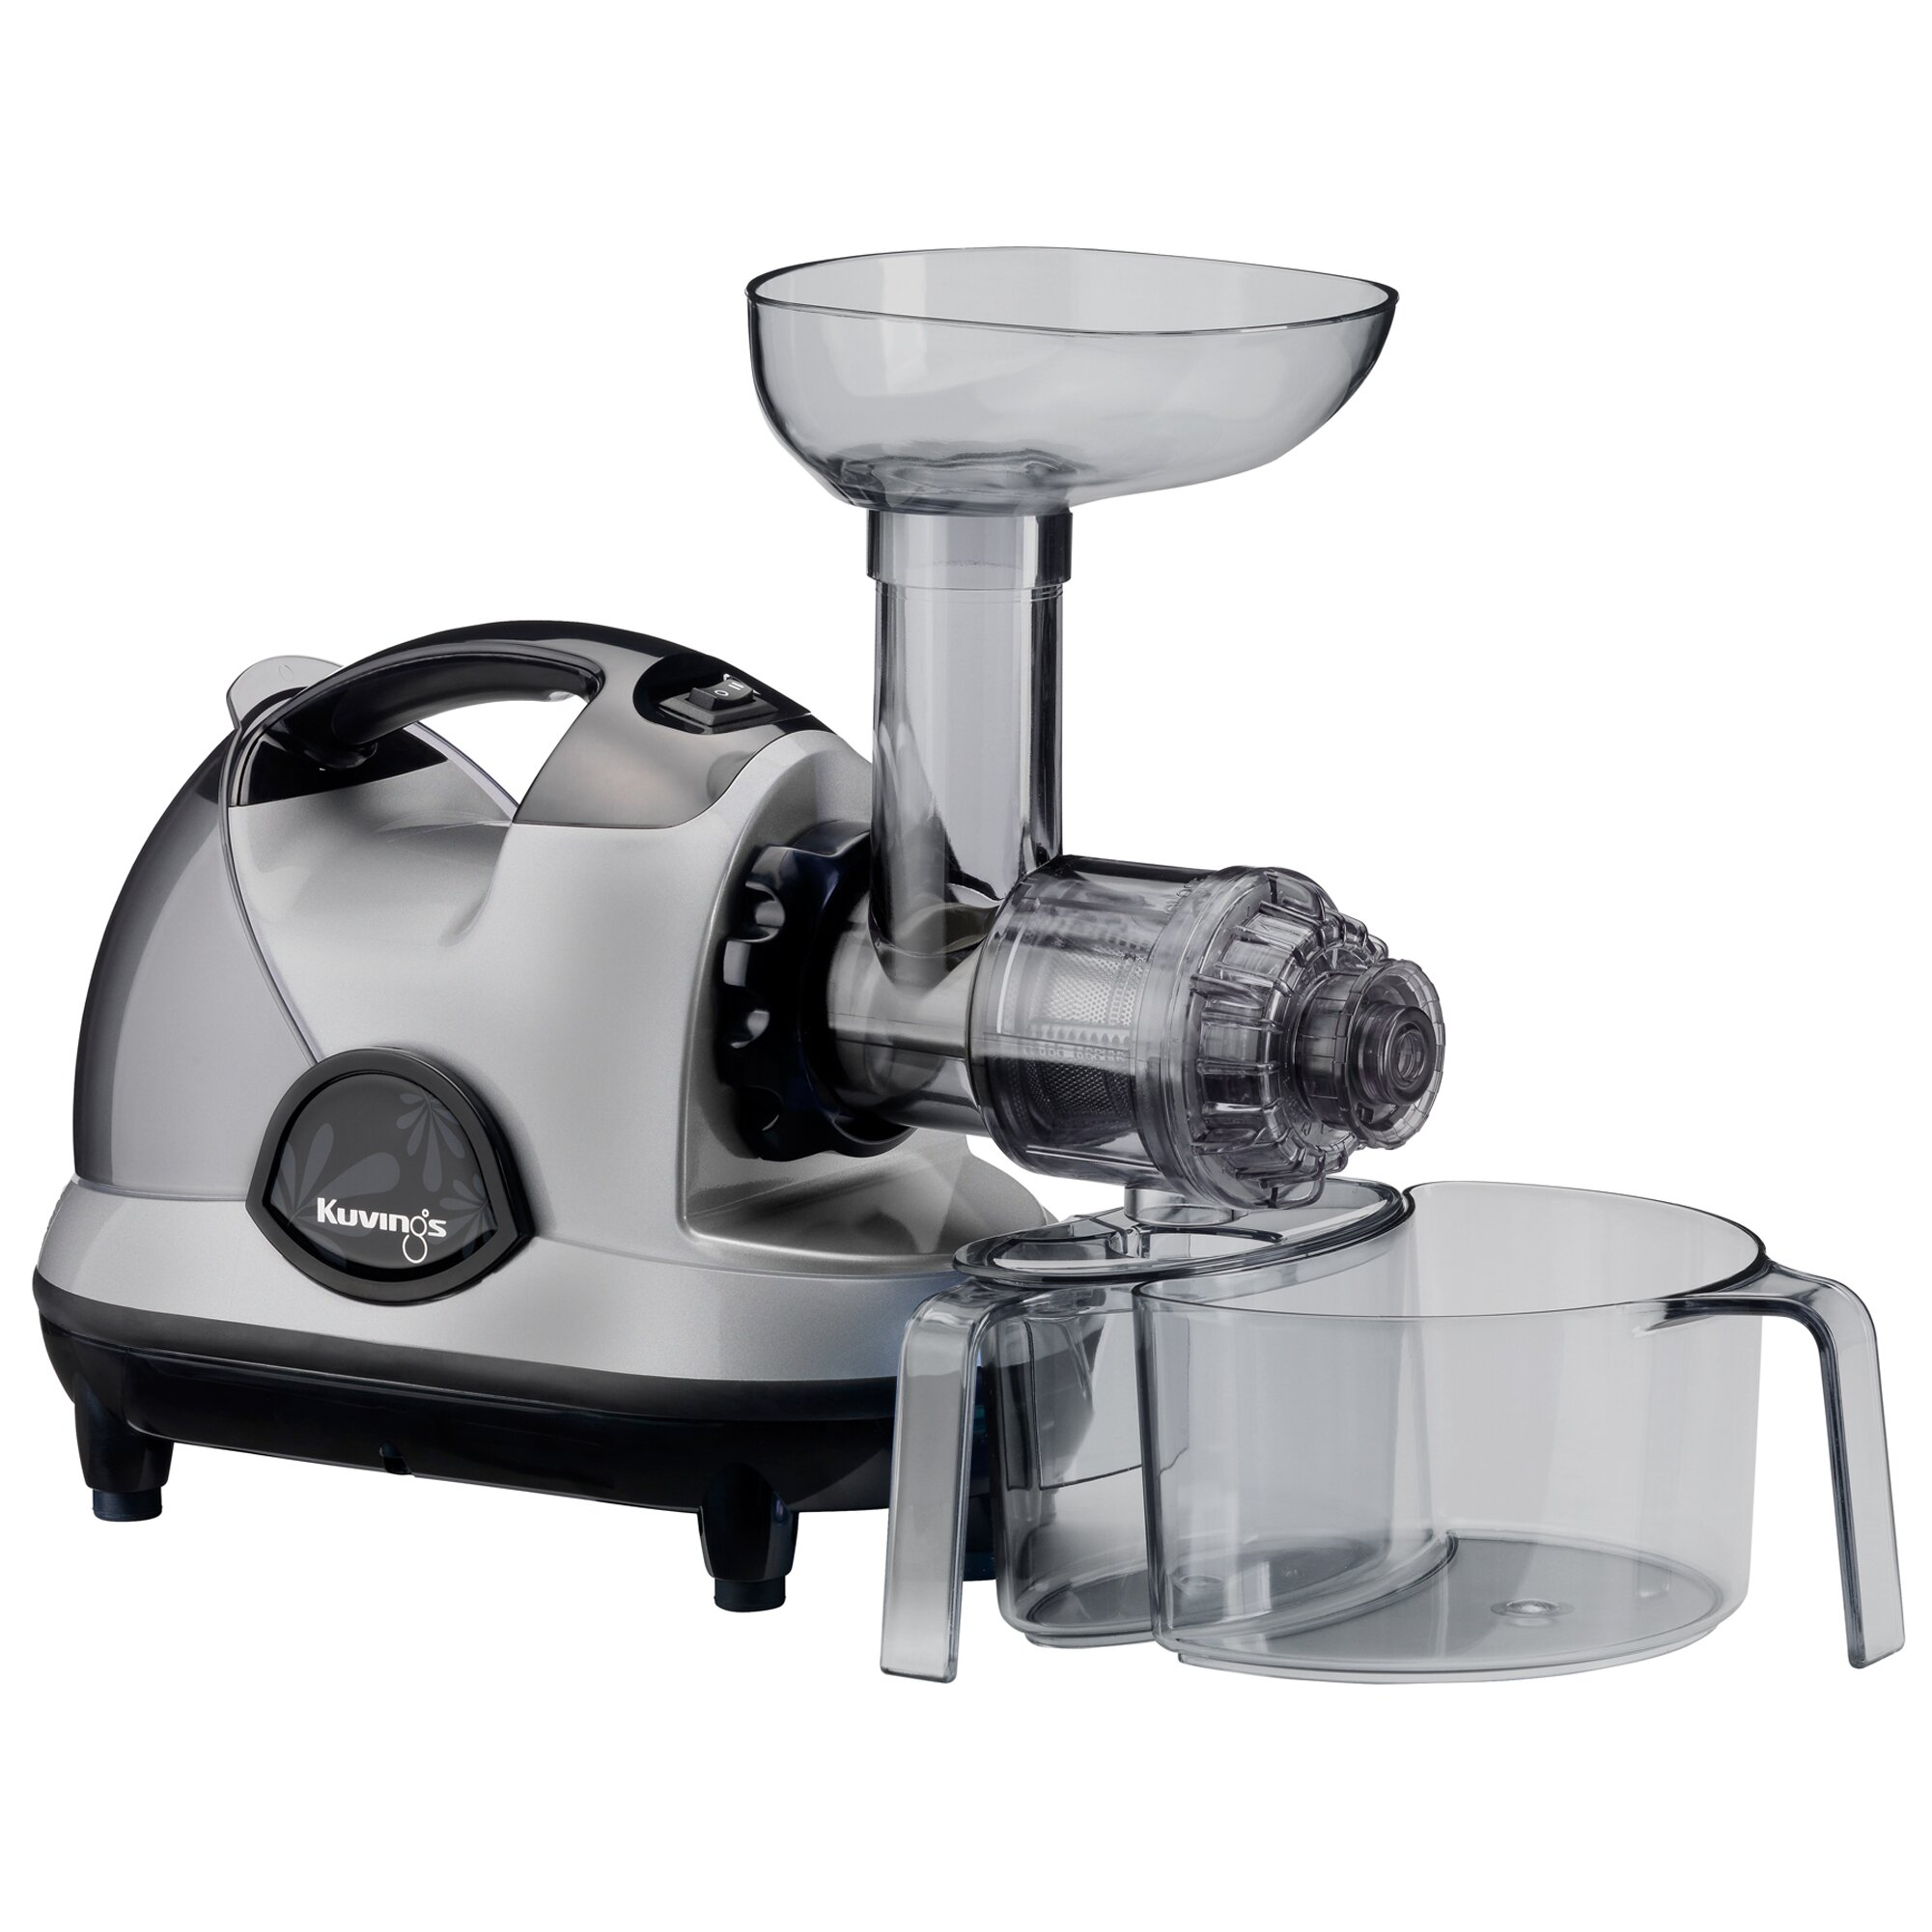 KUvINGS Multi-Purpose Slow Juicer & Reviews Wayfair